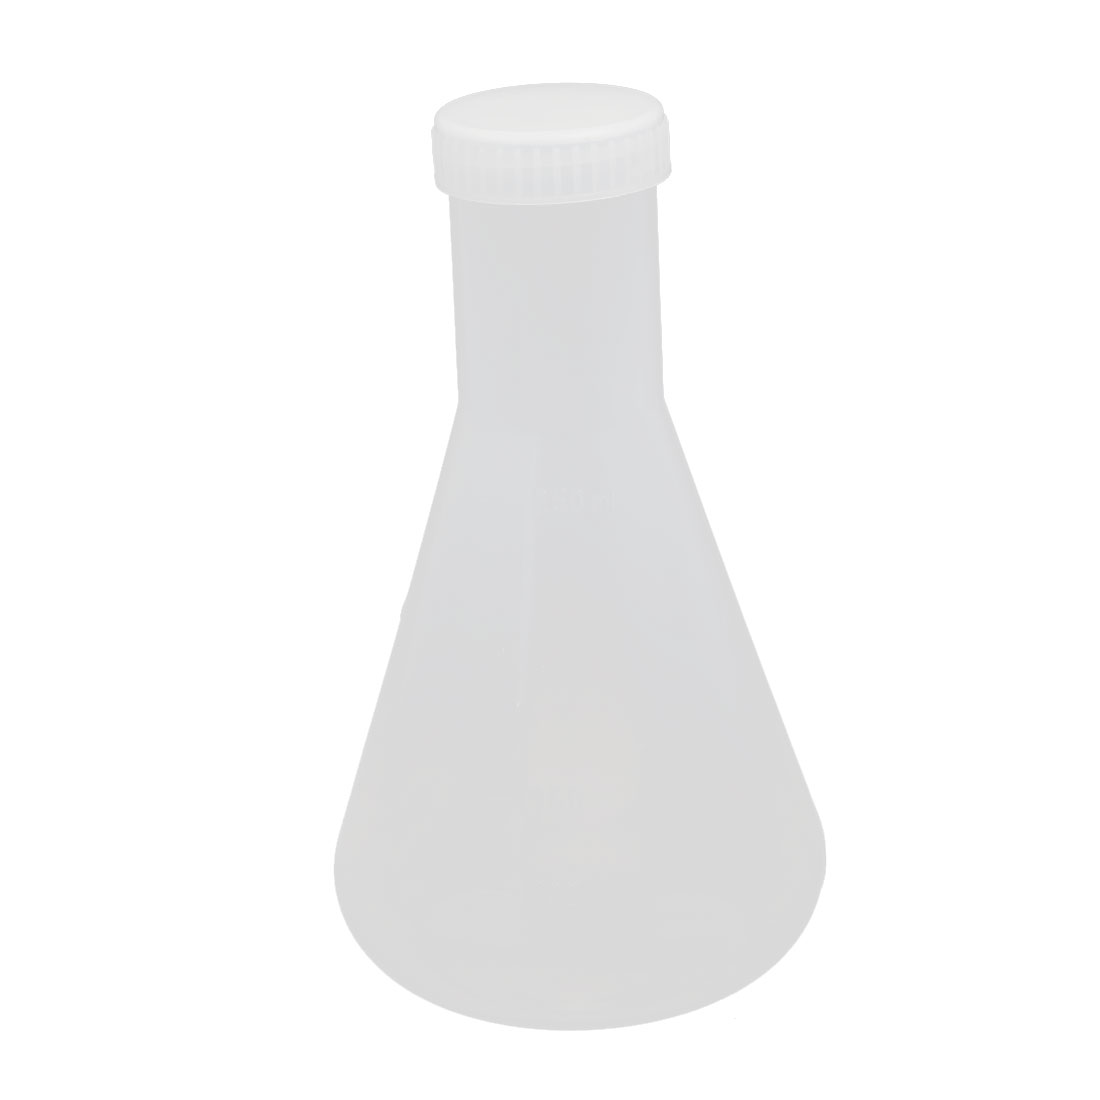 Experiment Laboratory 250ml PP Plastic Cone Measuring Cup Clear